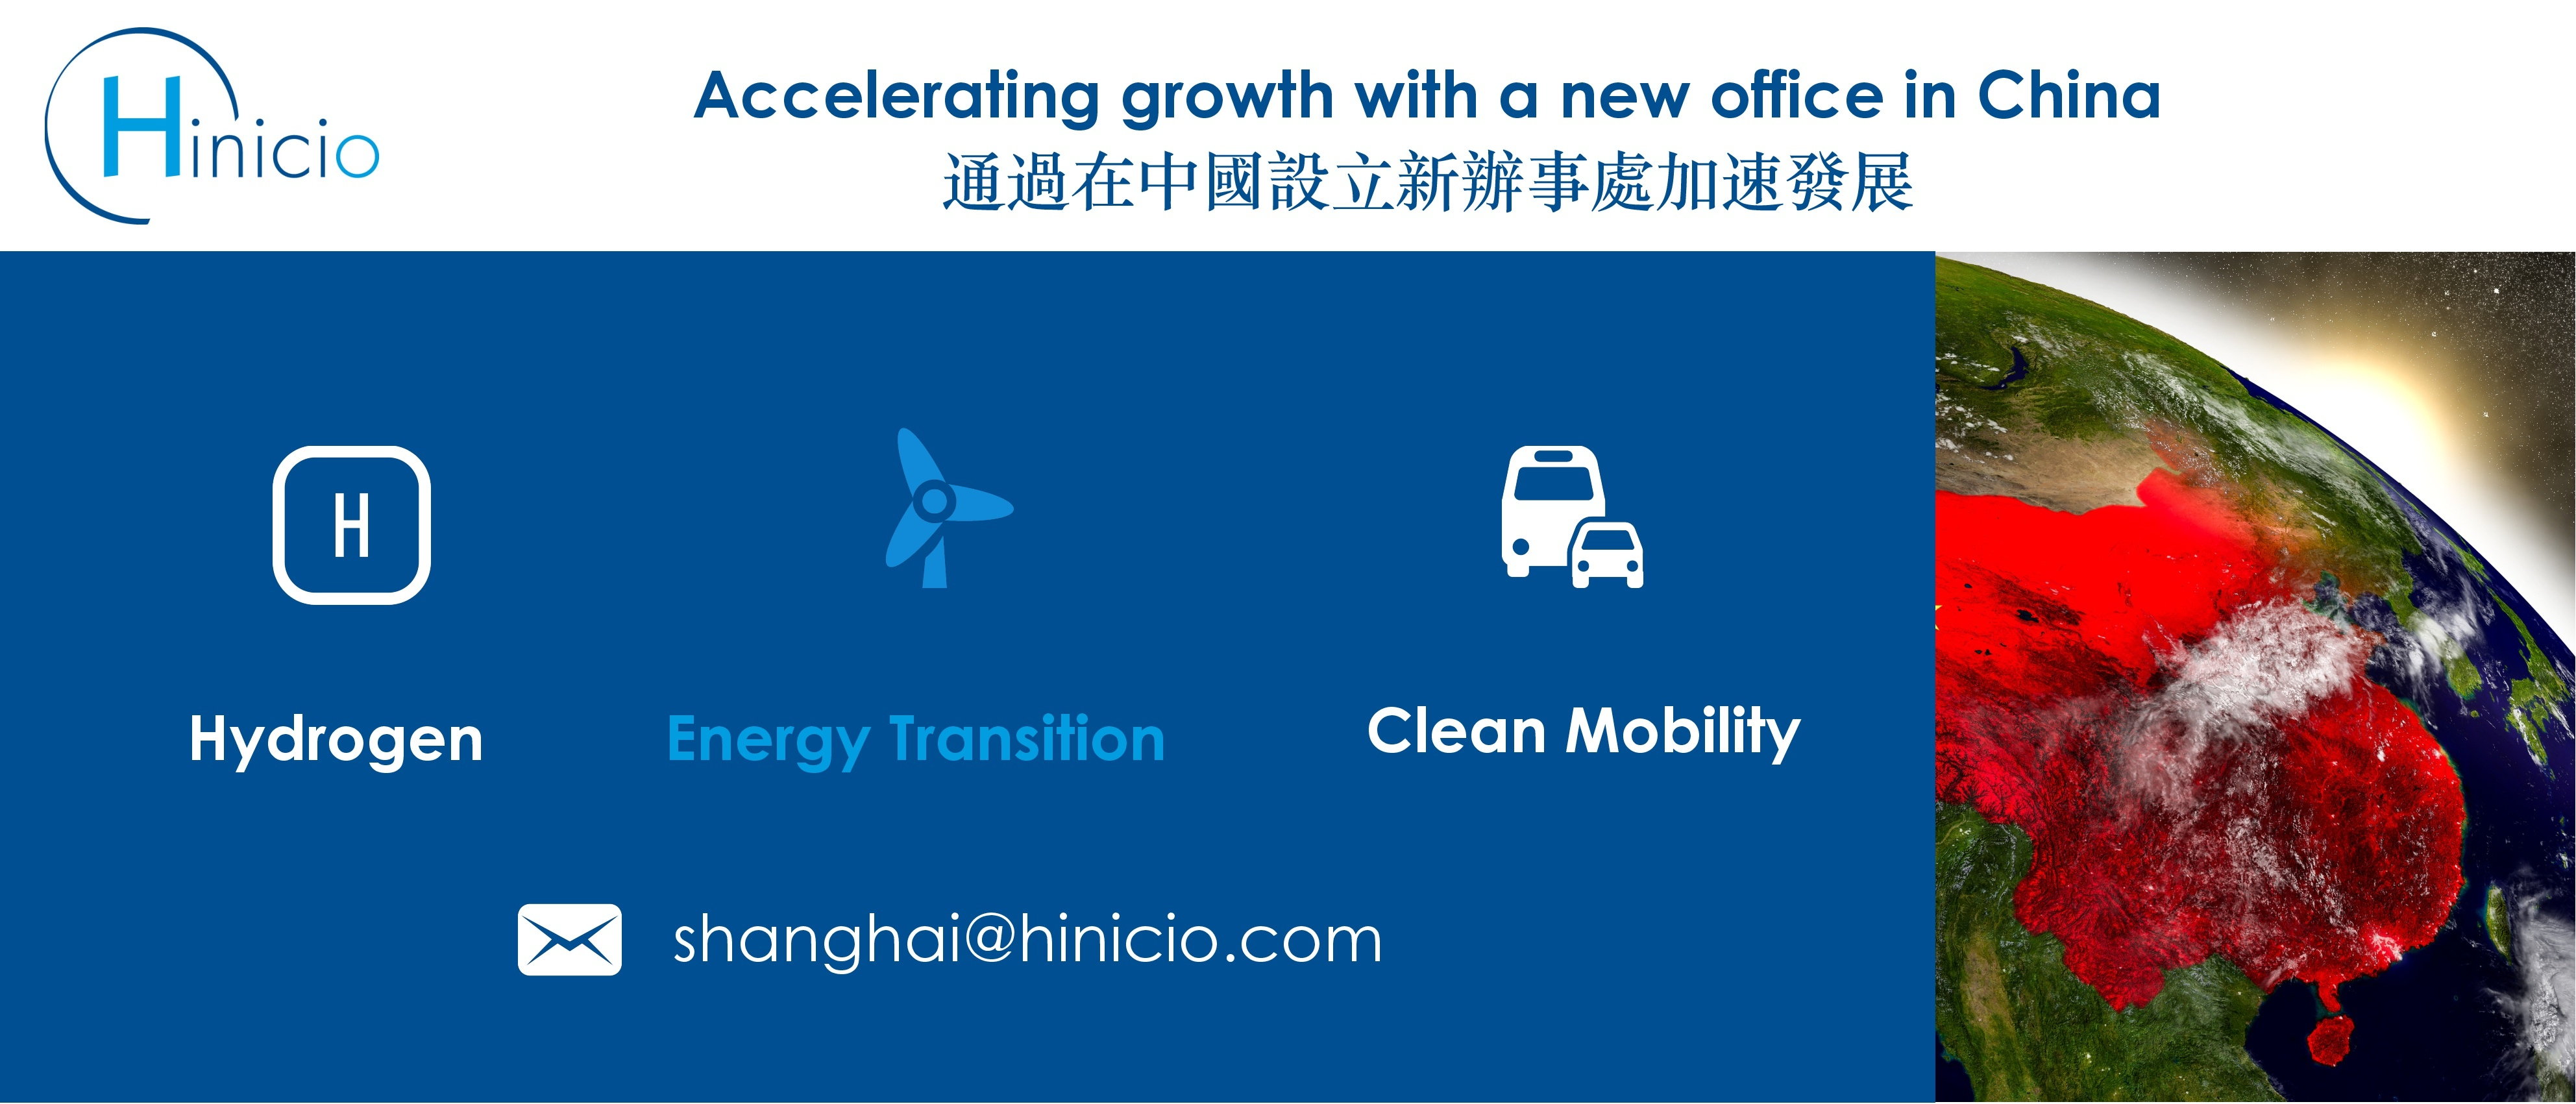 Hinicio Accelerates Growth With A New Office In China